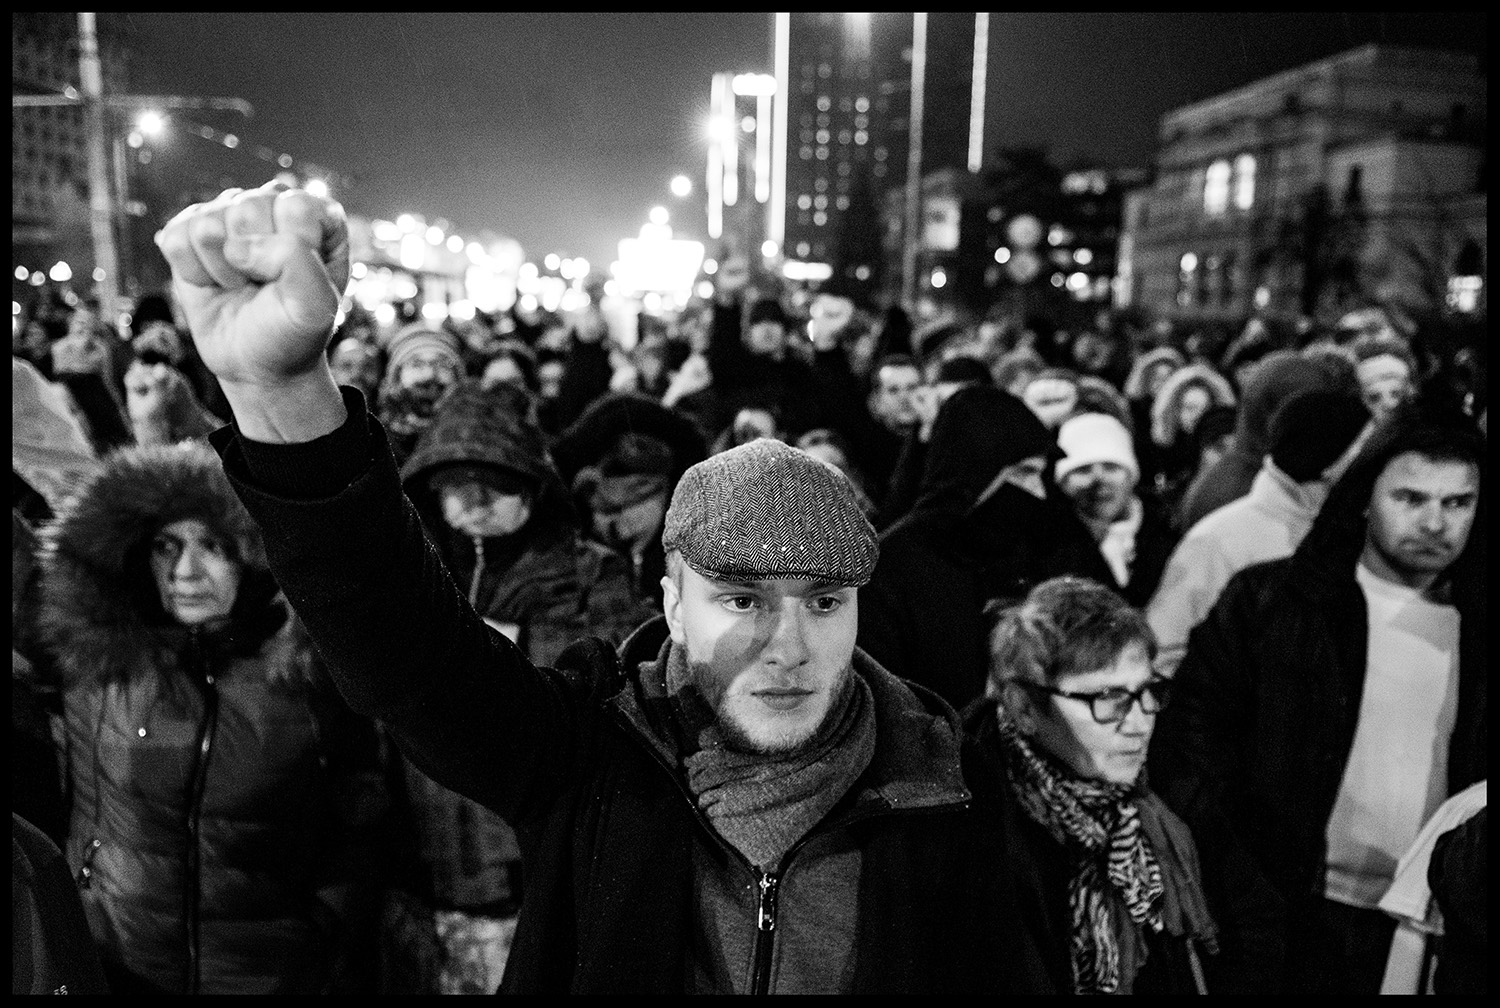 A man hold up a closed fist, a protest symbol Davor Dragicevic fight for justice.